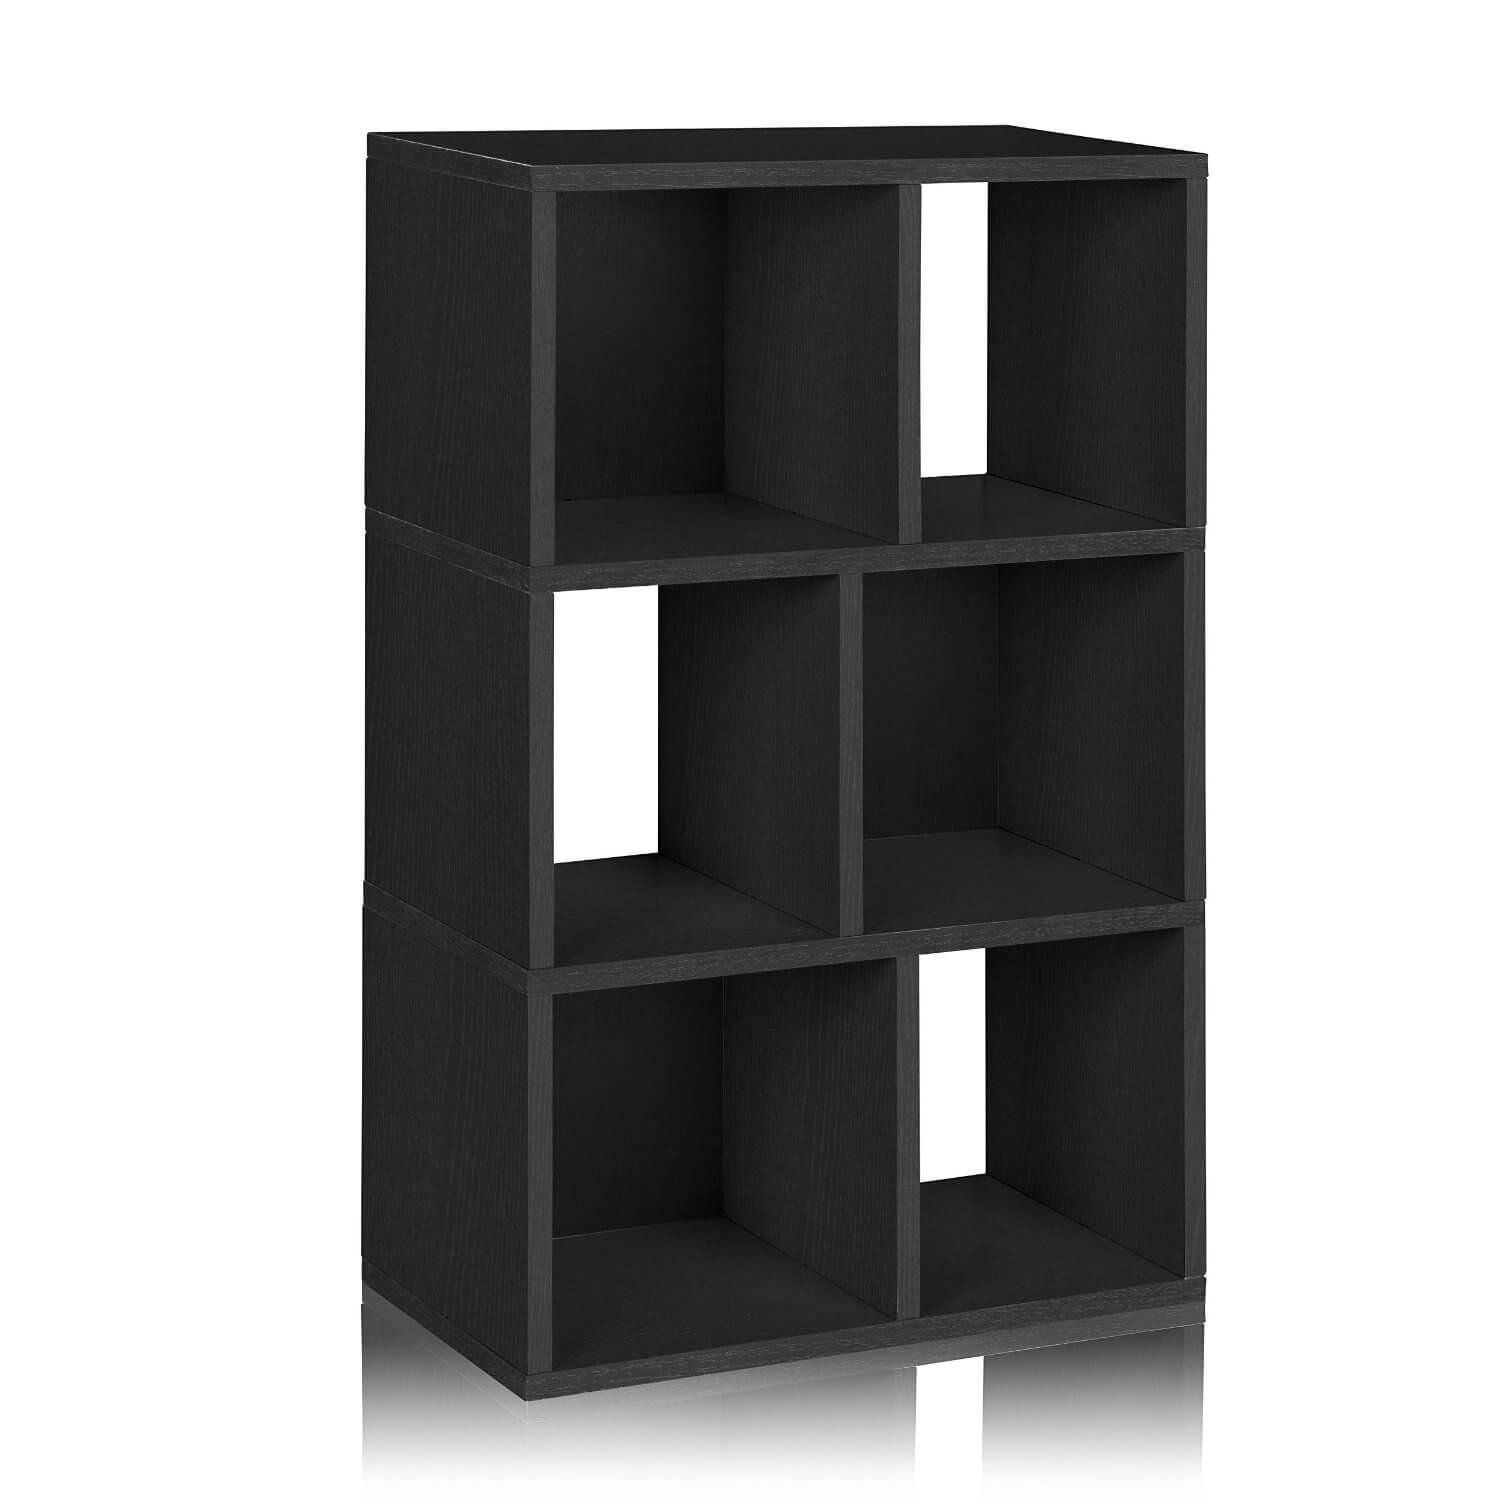 This Is A Simple Checkered Style 6 Cube Shelving Unit Standing 368 Inches Tall And